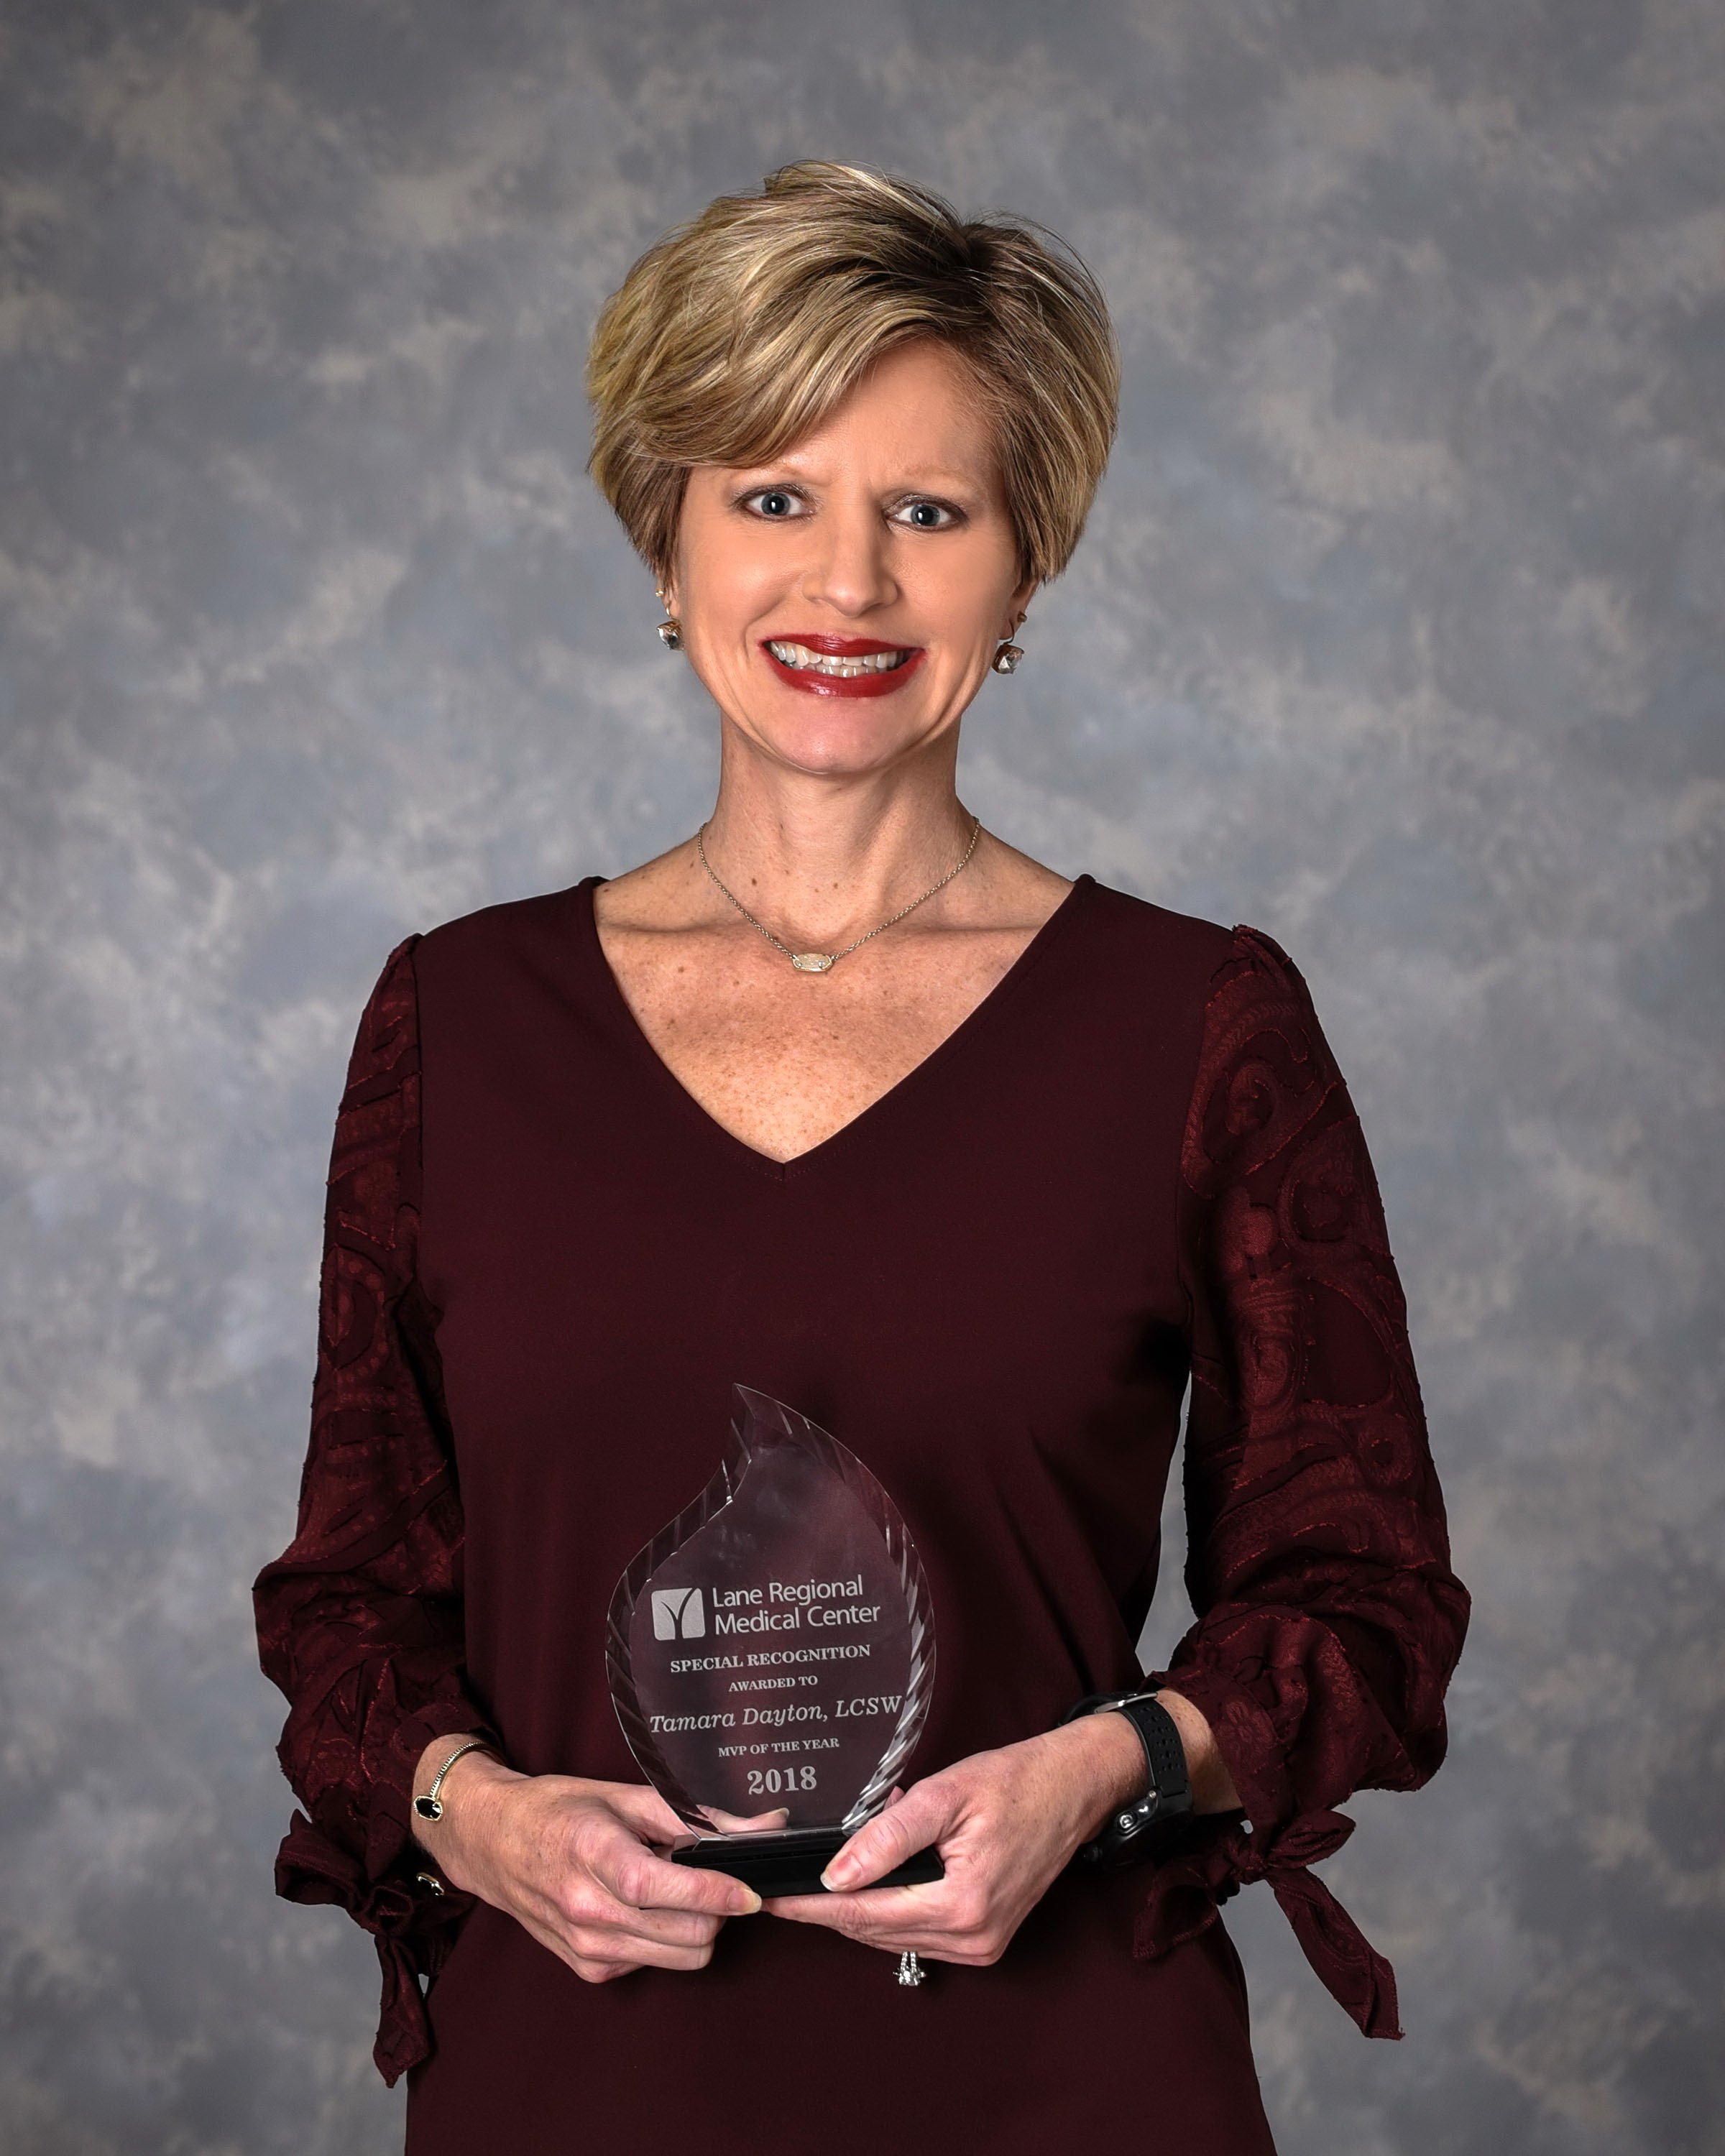 Lane Regional Medical Center Names Tamara Dayton MVP of the Year